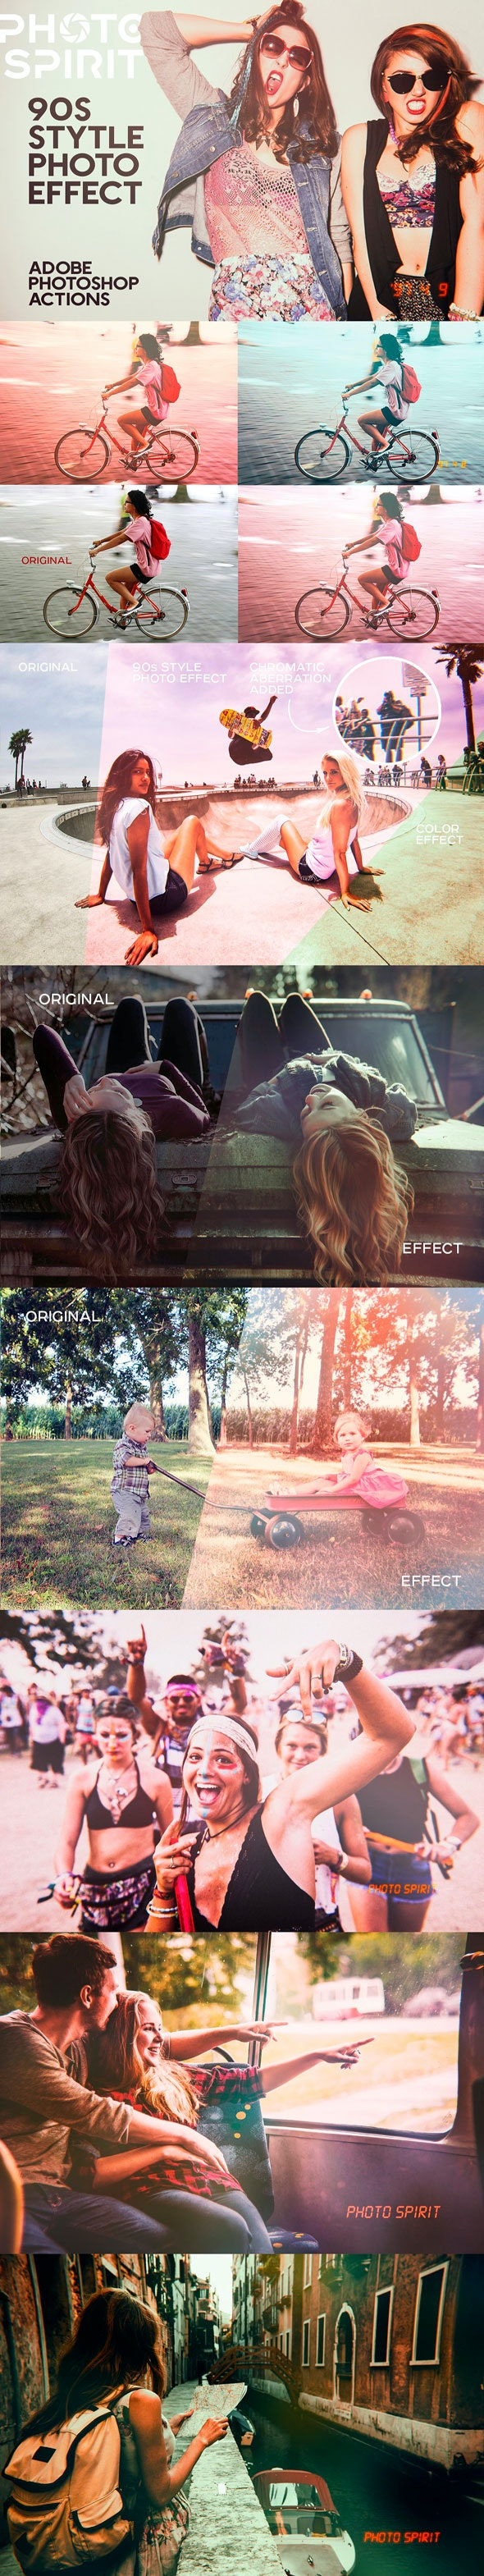 90s Style Photo Effects Photoshop - Photo Effects Actions